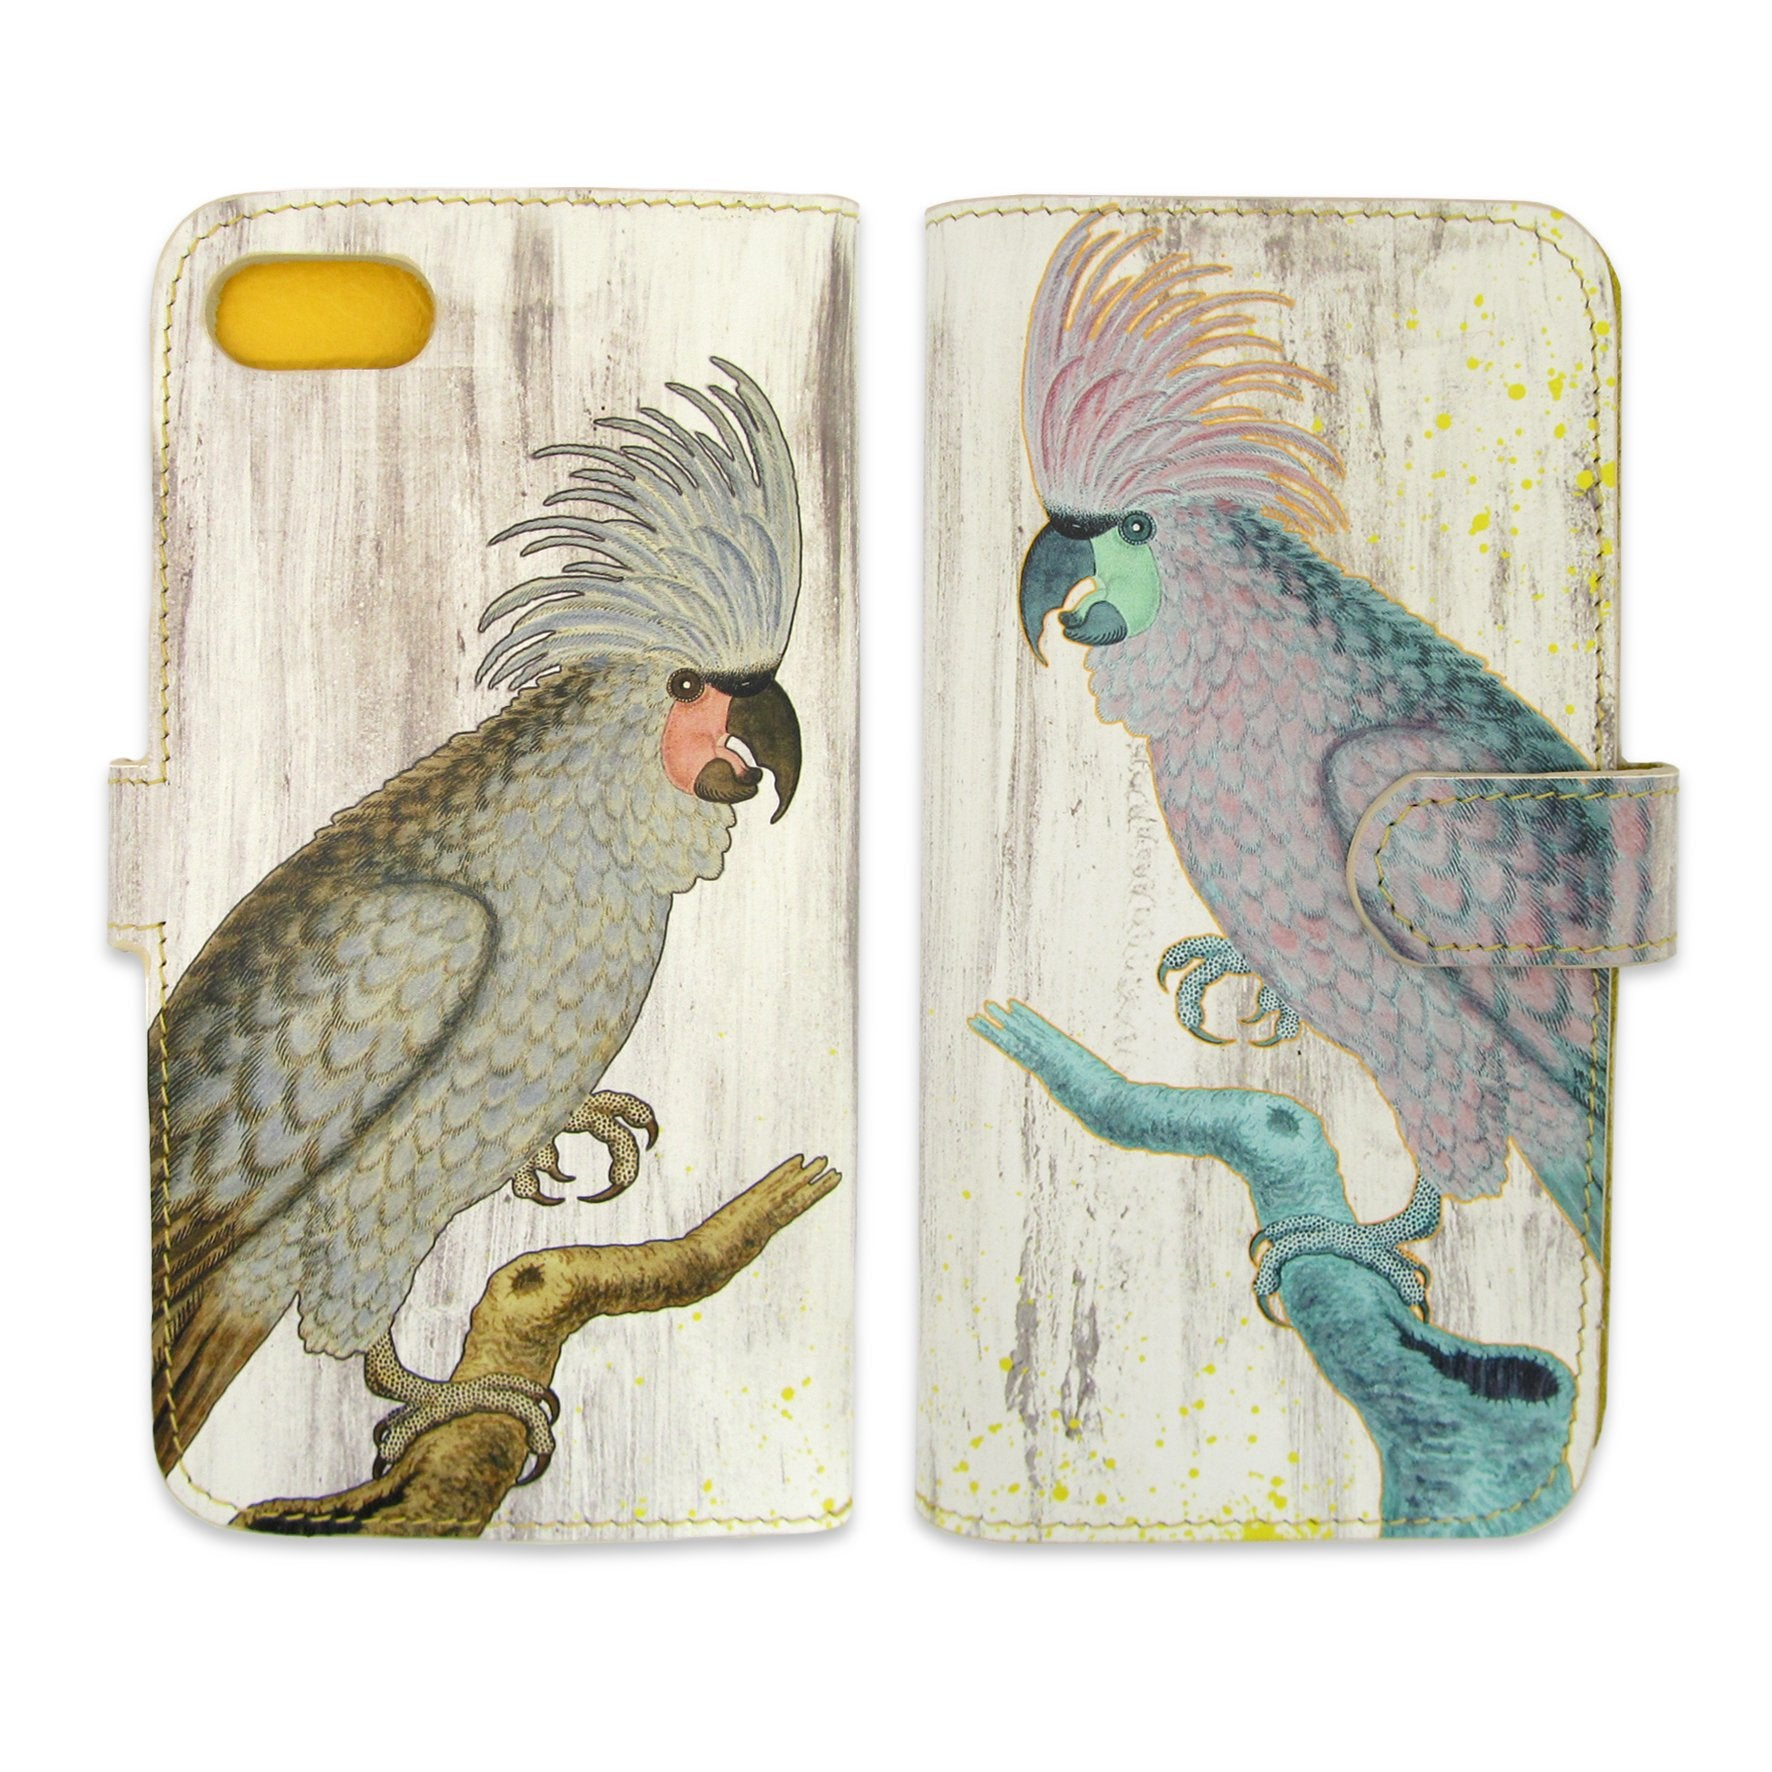 Leather Wallet Phone Case - The Parrots Phone case - Bird phone case -  - Tovi Sorga